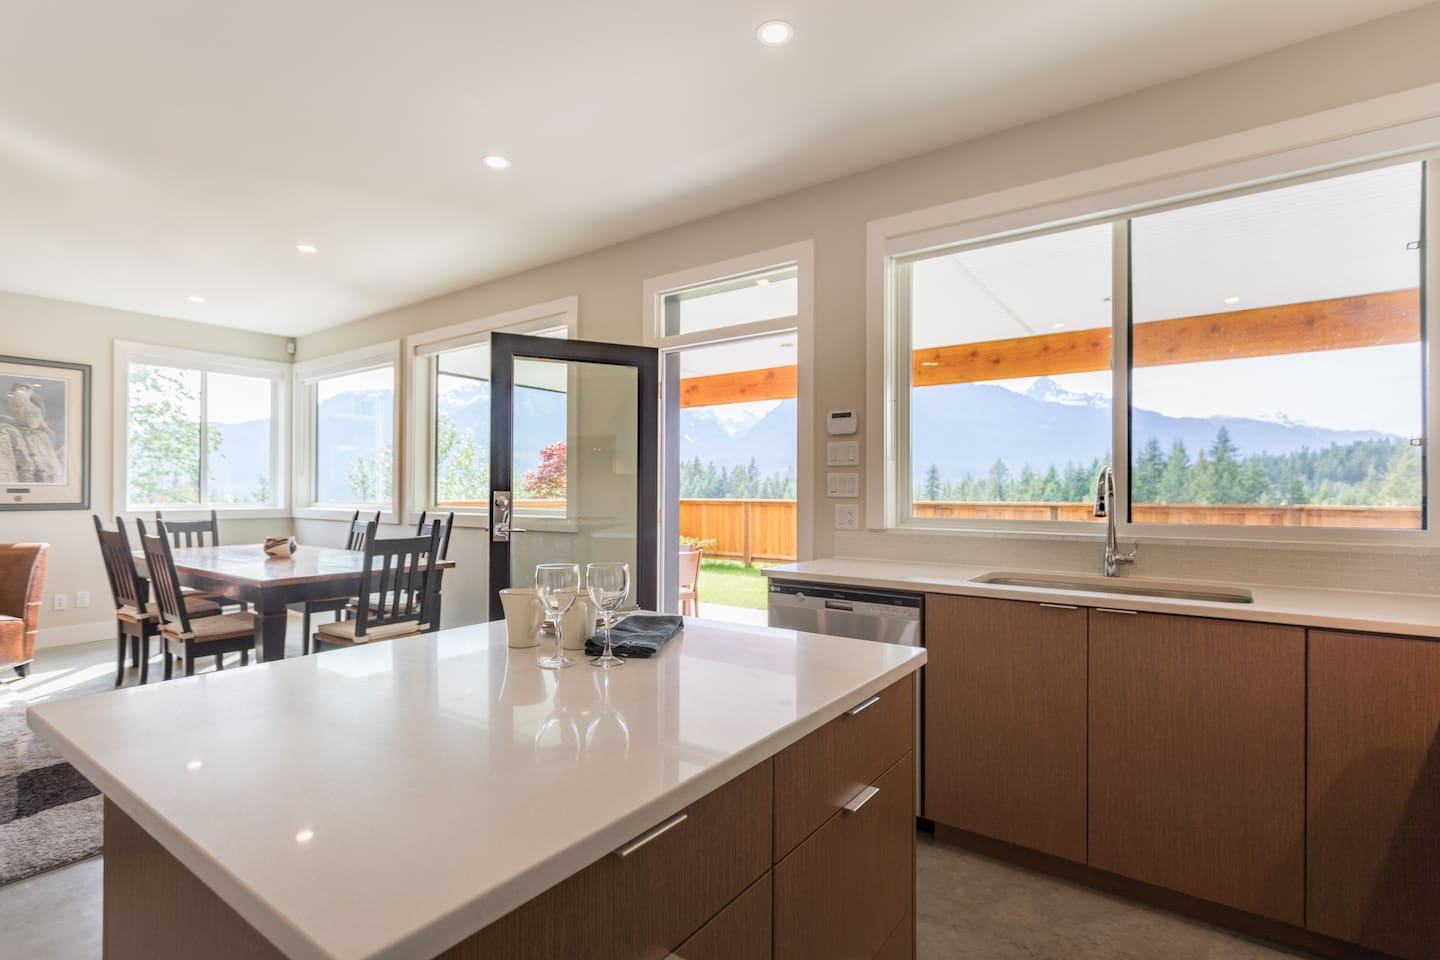 Welcome to our bright Squamish home with views across and down the Squamish Valley.